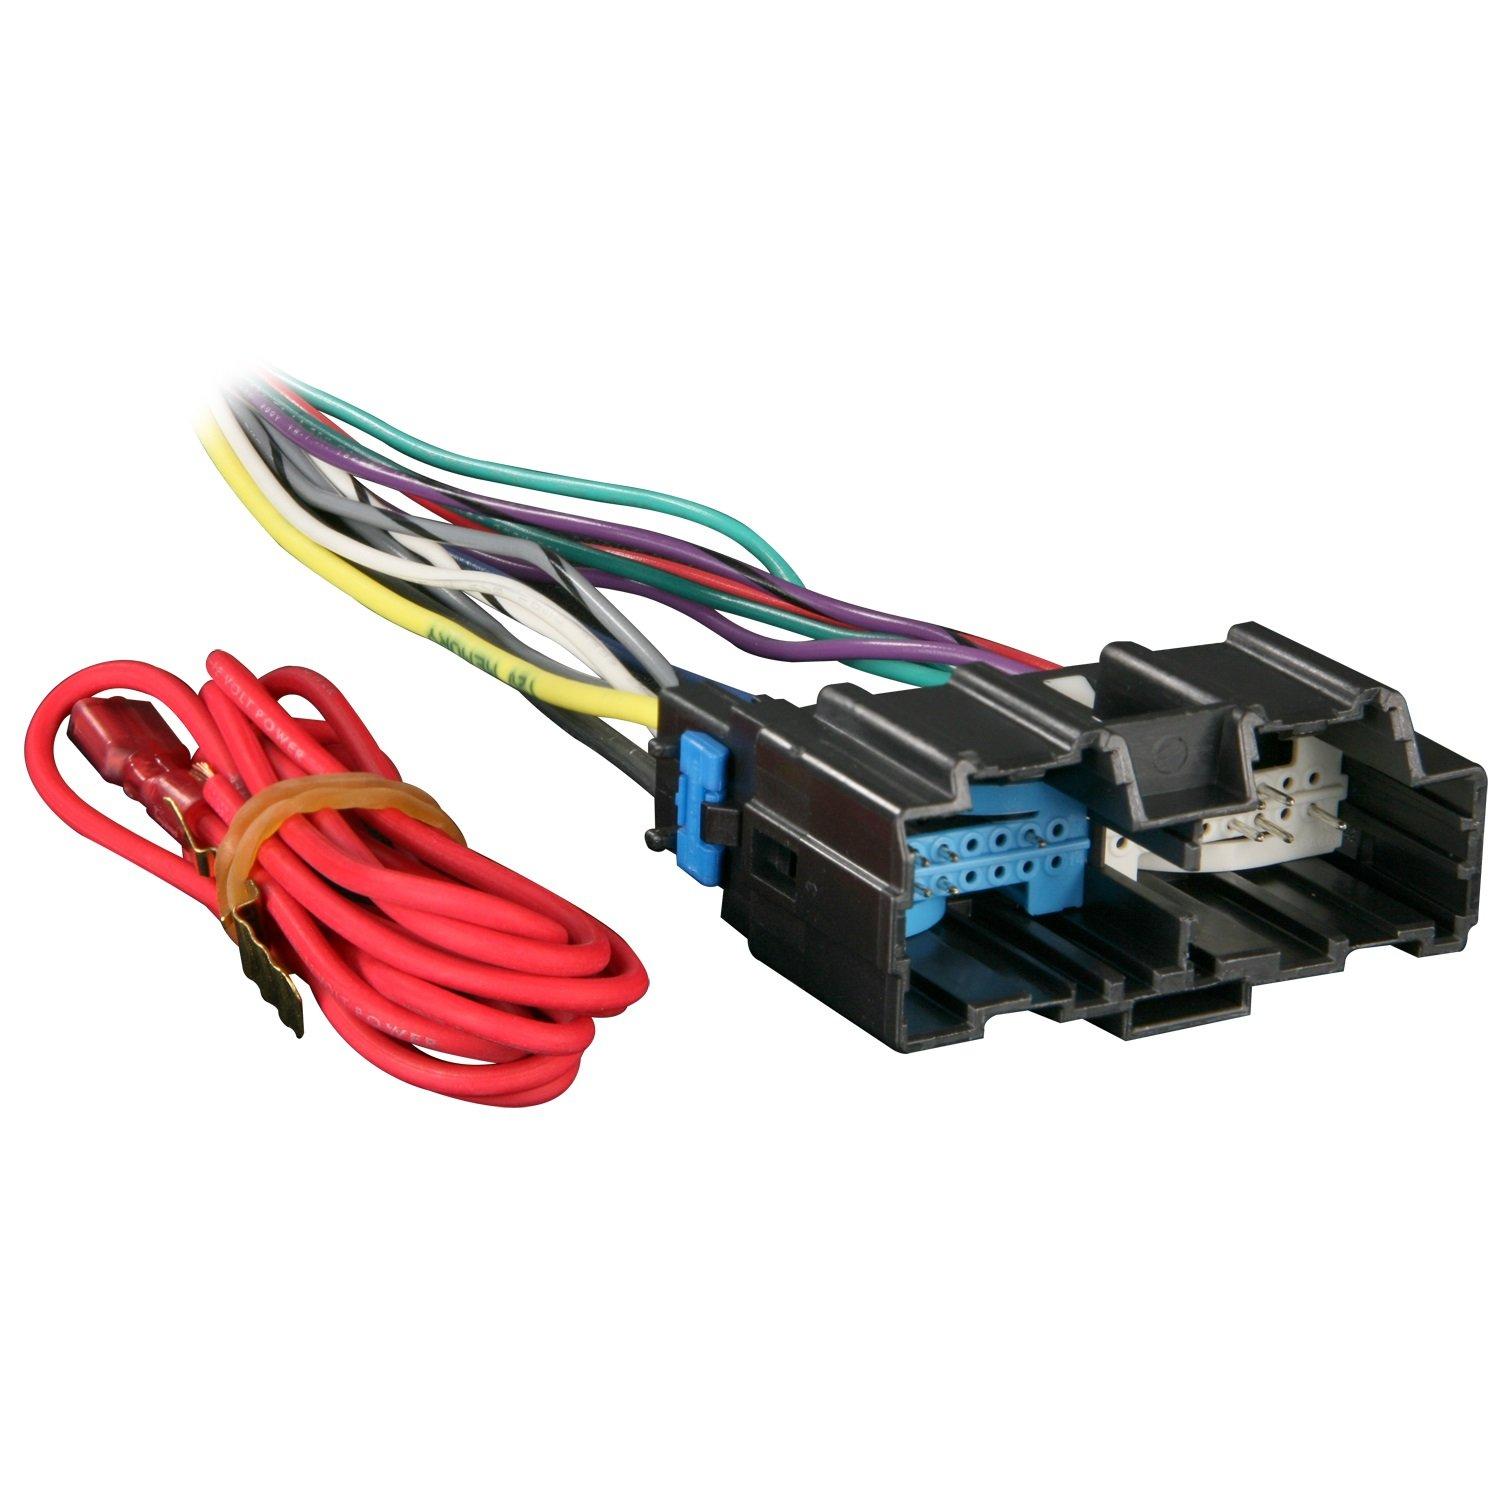 71ZzH dyg7L._SL1500_ amazon com metra 70 2105 radio wiring harness for impala monte 2006 Chevy Impala at mr168.co